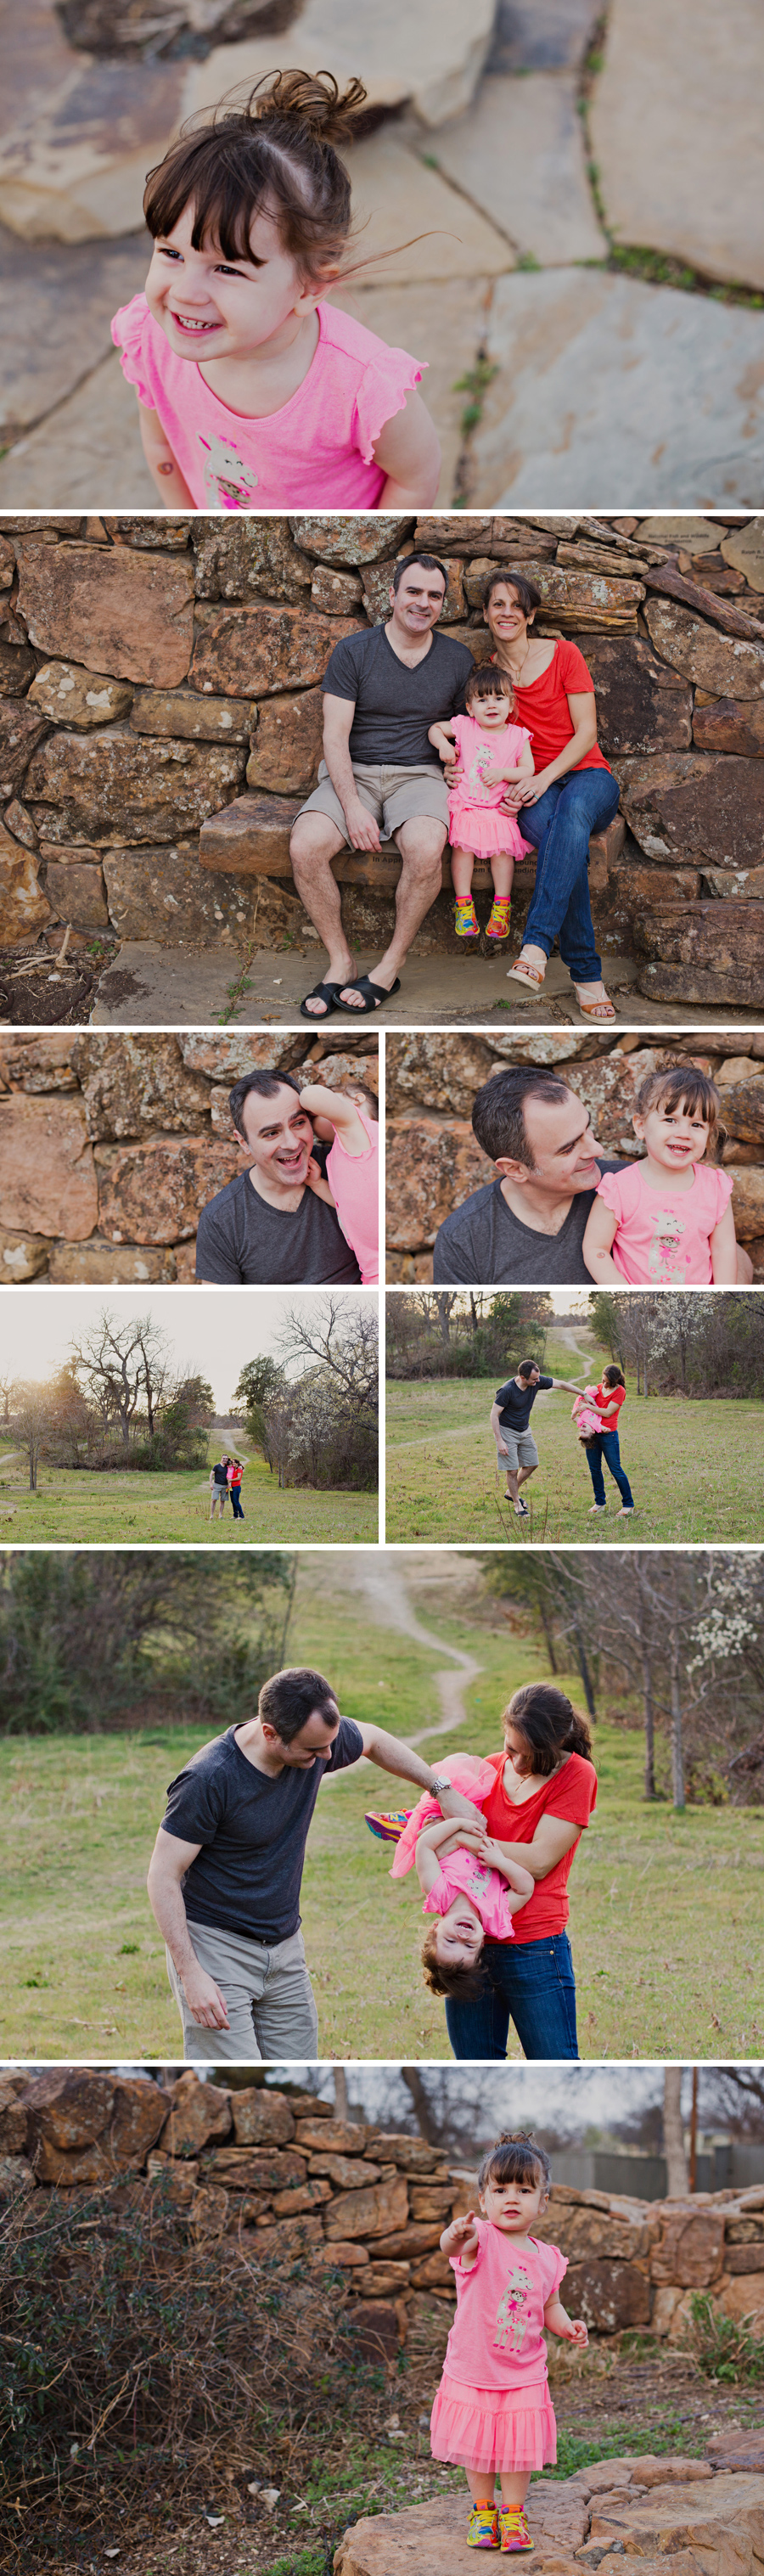 Dallas-Family-Photographerc017